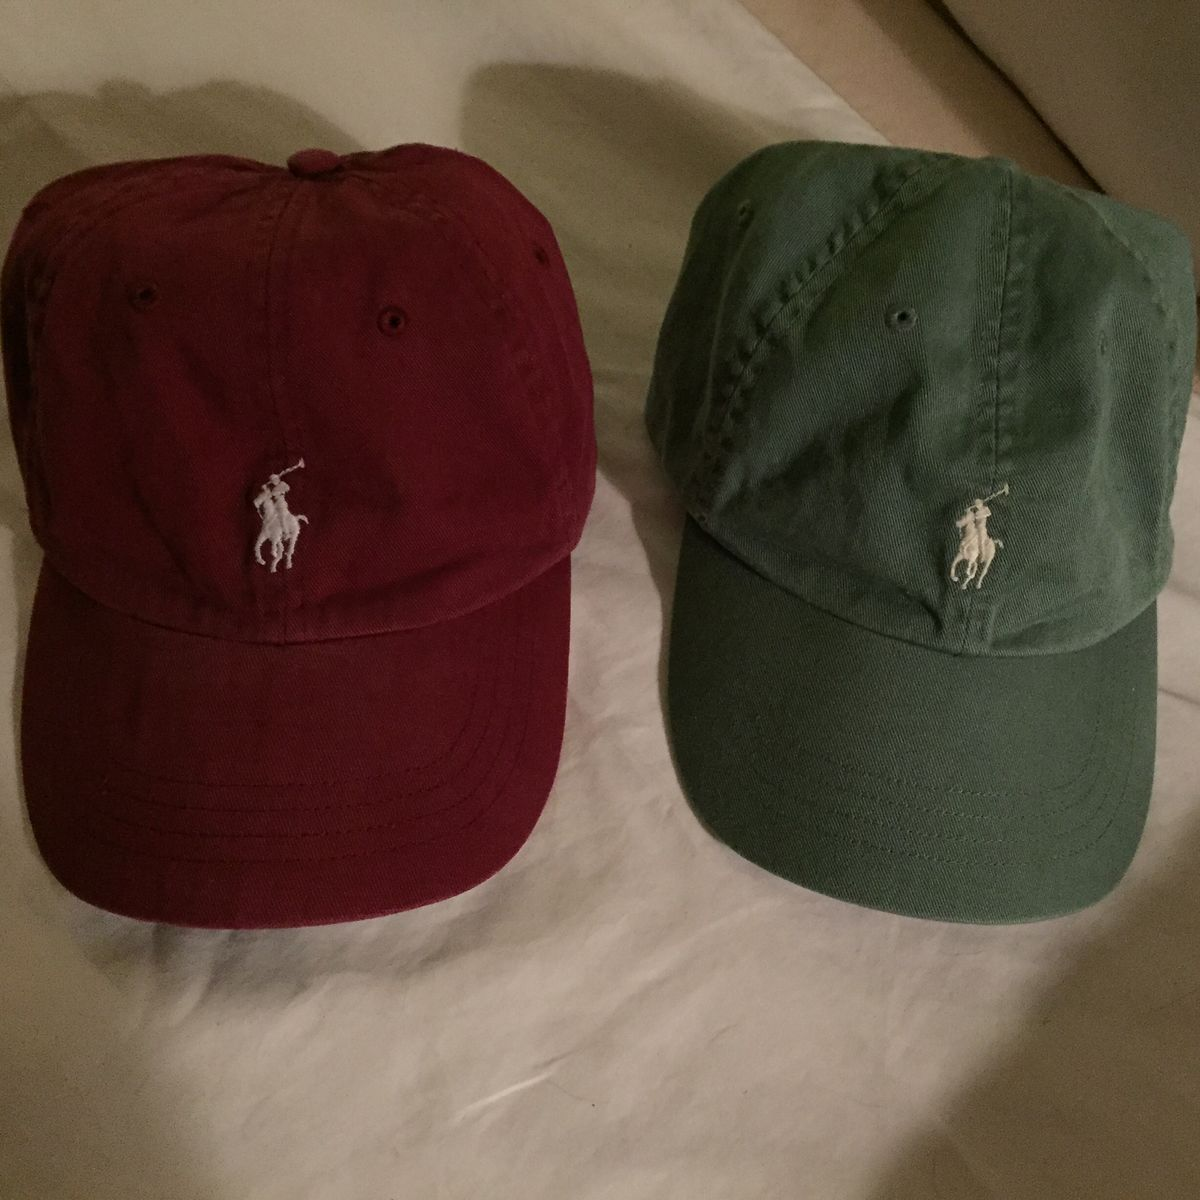 Polo Ralph Lauren Leather Strap Back Hats (BOTH HATS) - product images of  ... 061c253482a9